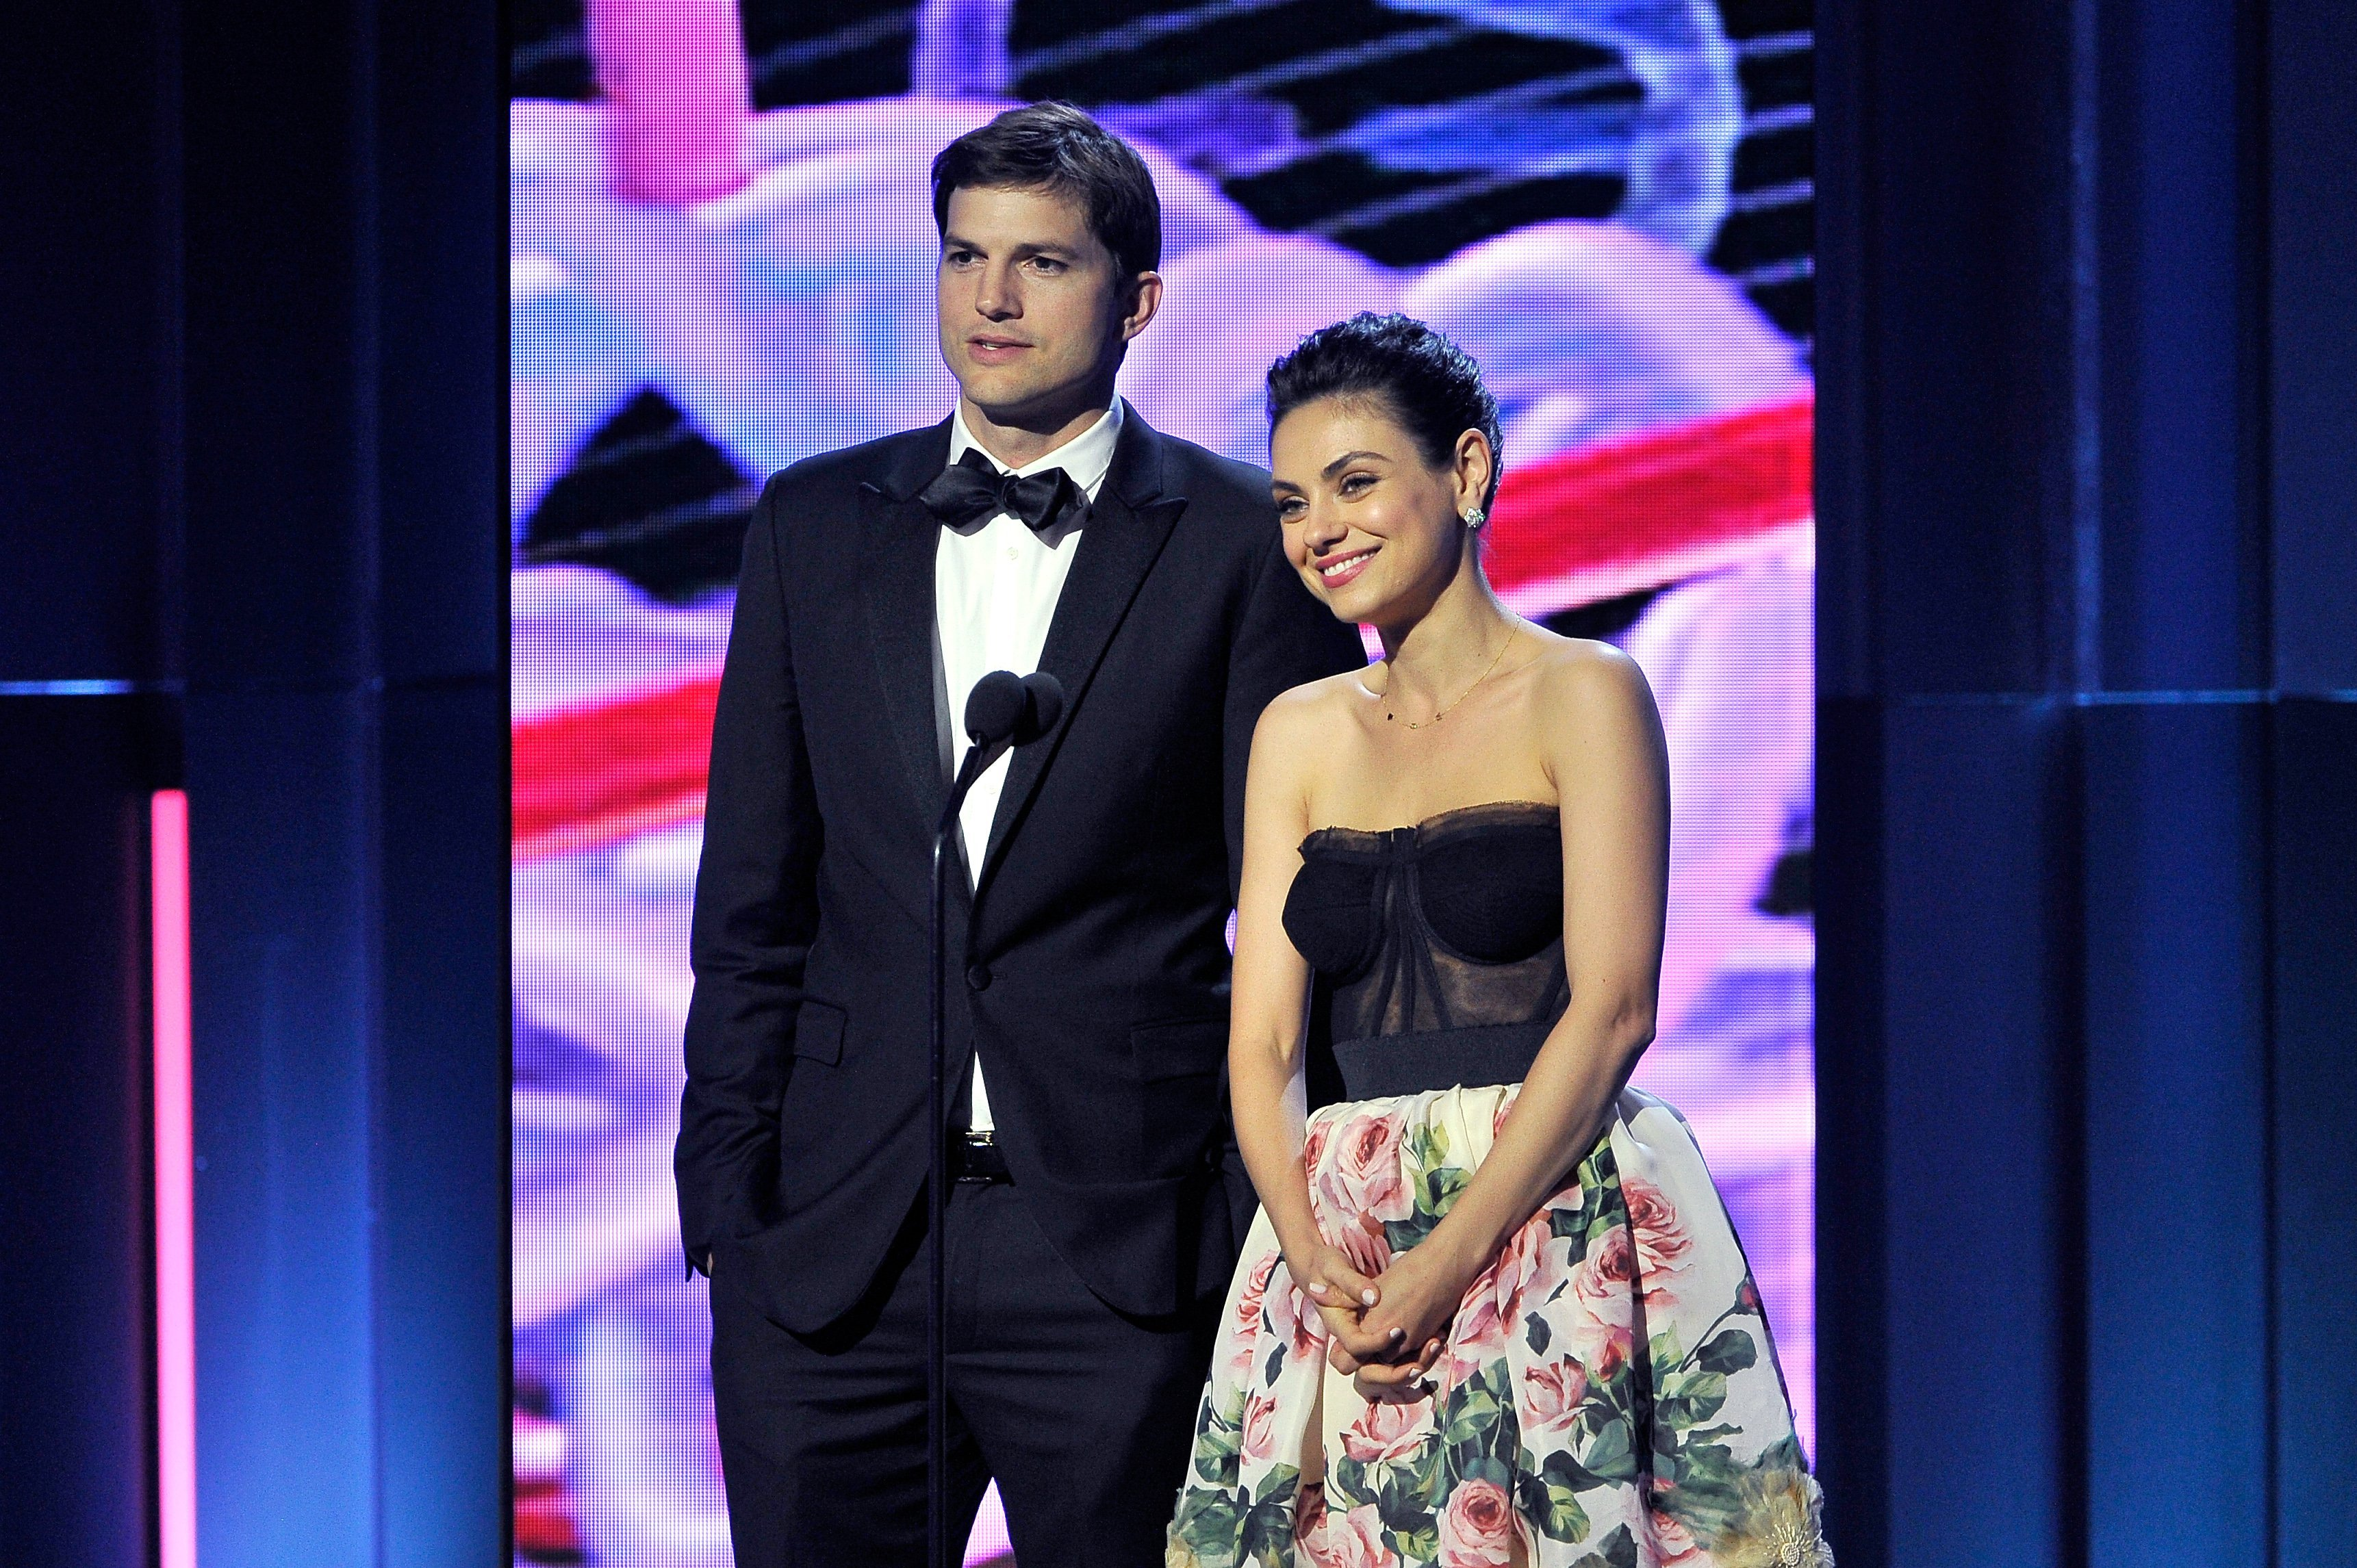 Ashton Kutcher and Mila Kunis  during the 2018 Breakthrough Prize on December 3, 2017 | Photo: GettyImages